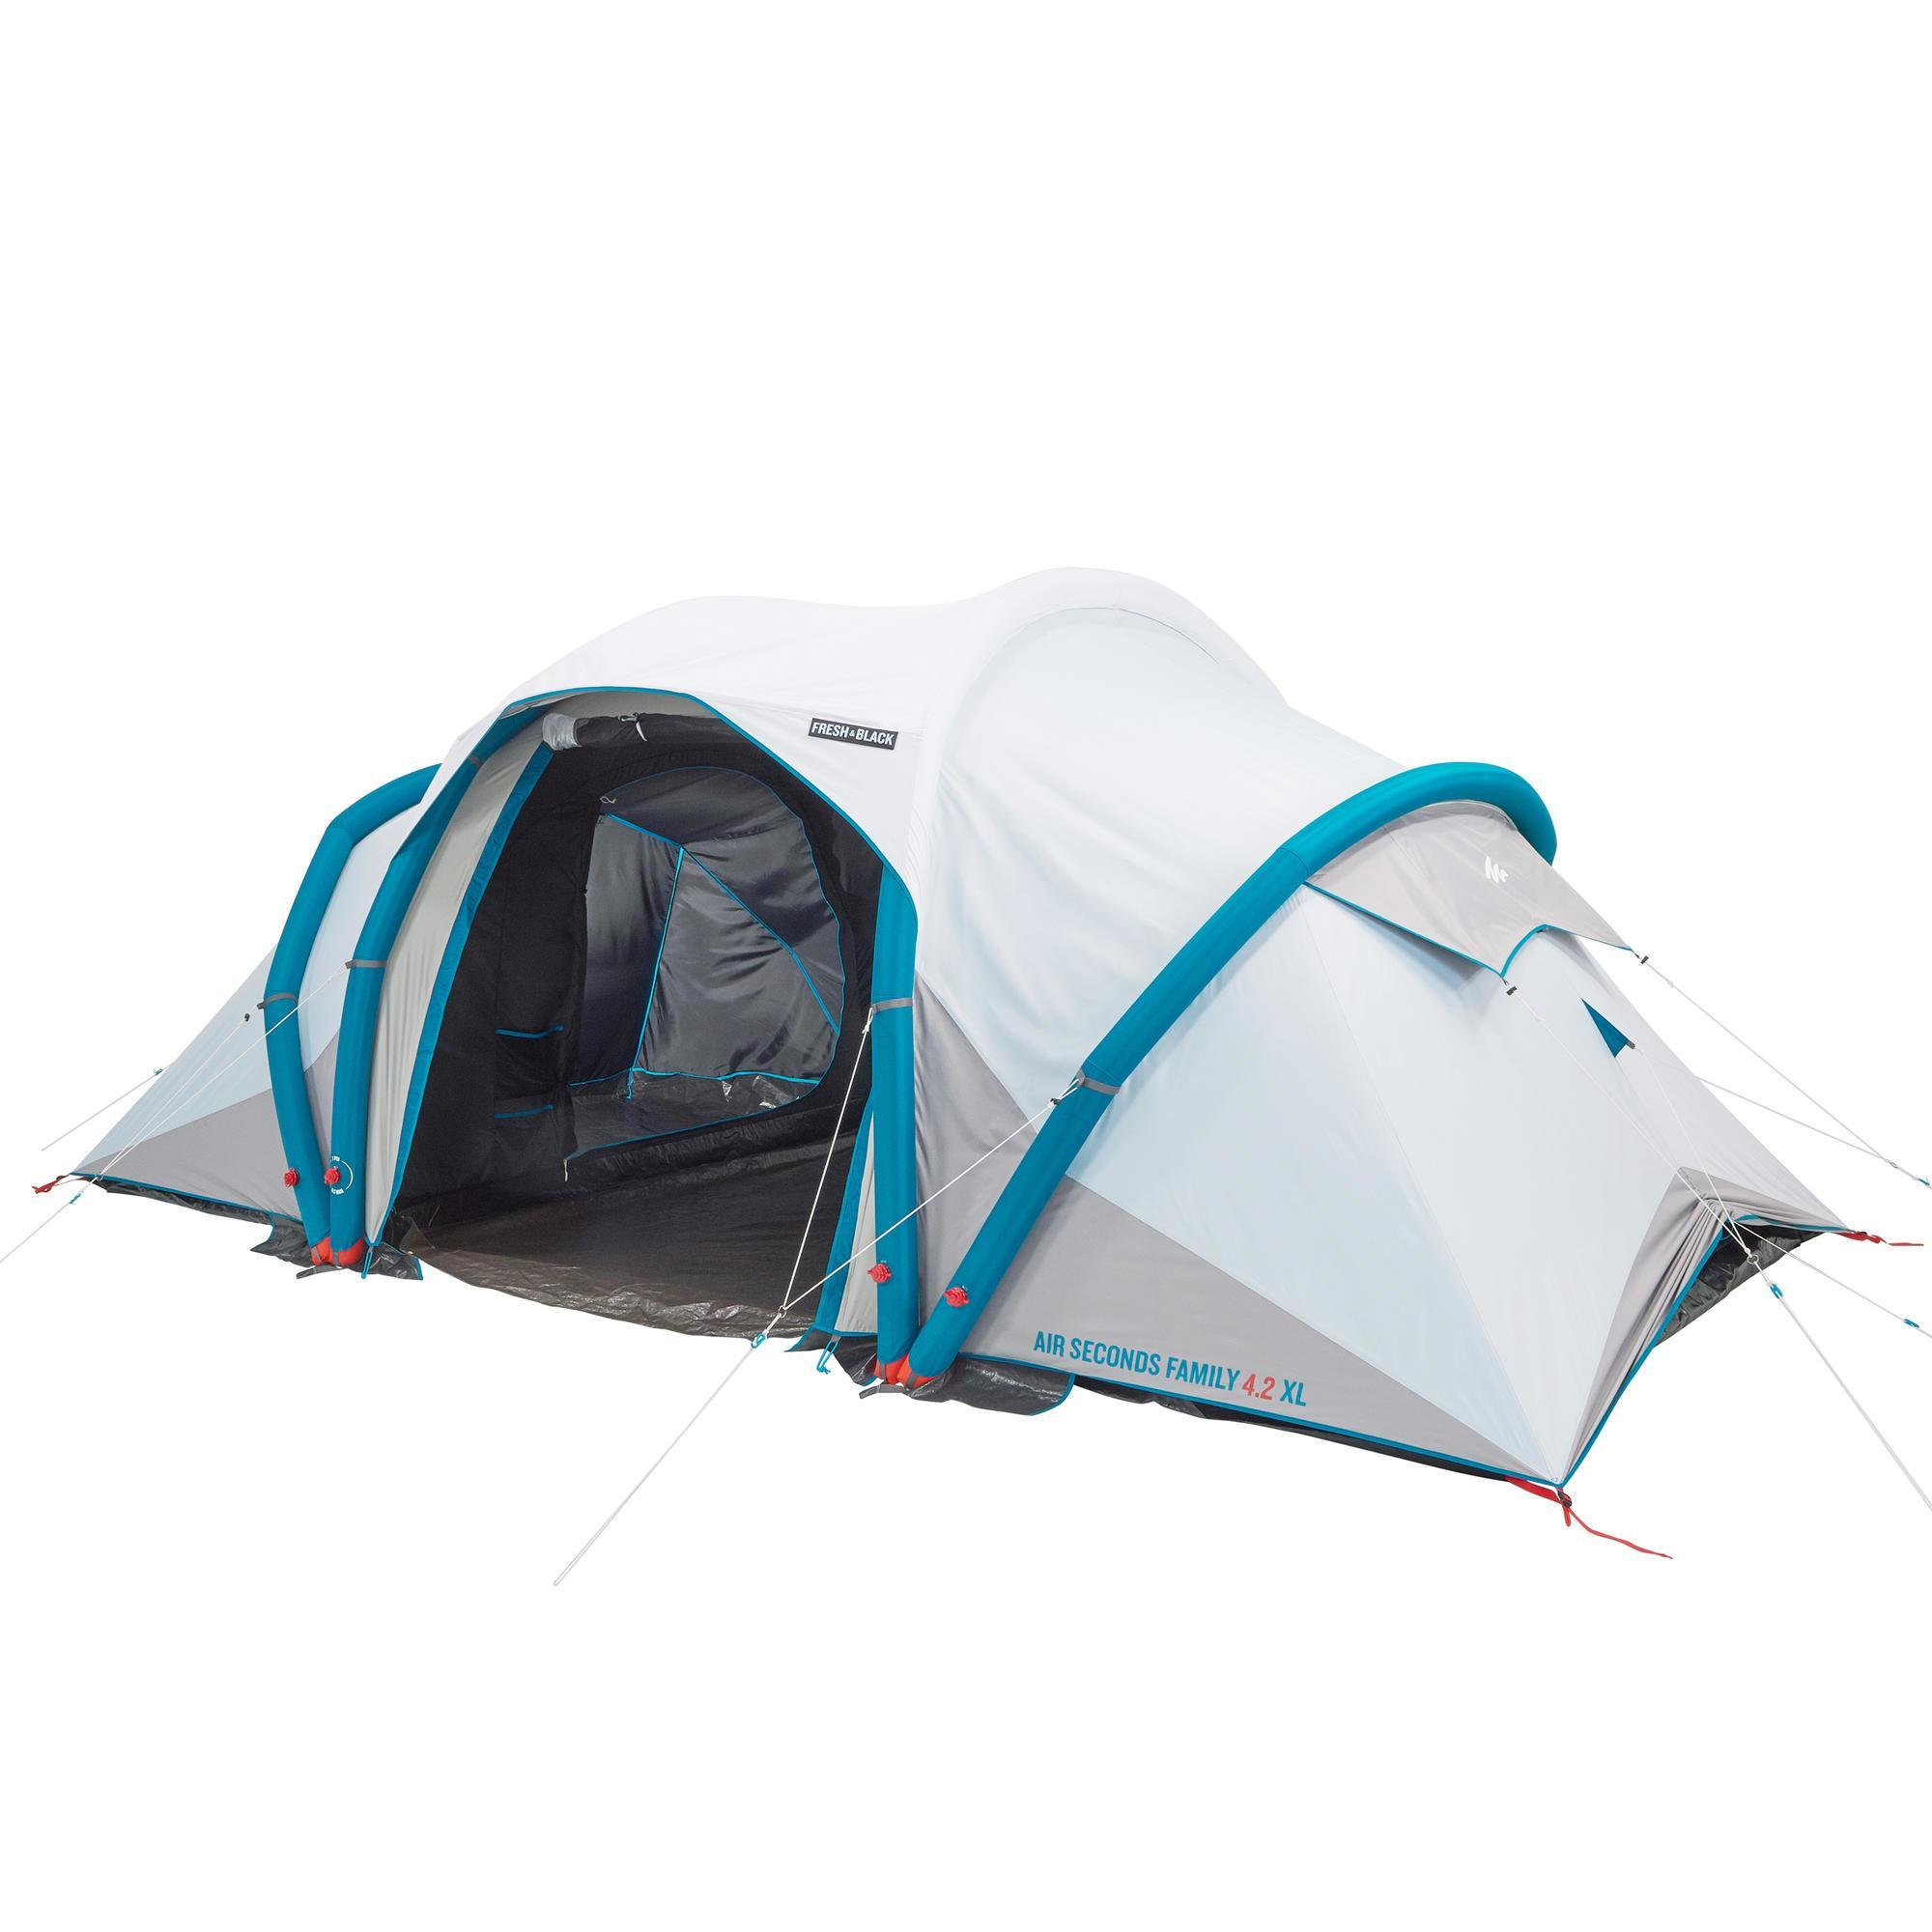 Family Camping Tent Air Seconds Family 4 2 Xl Fresh